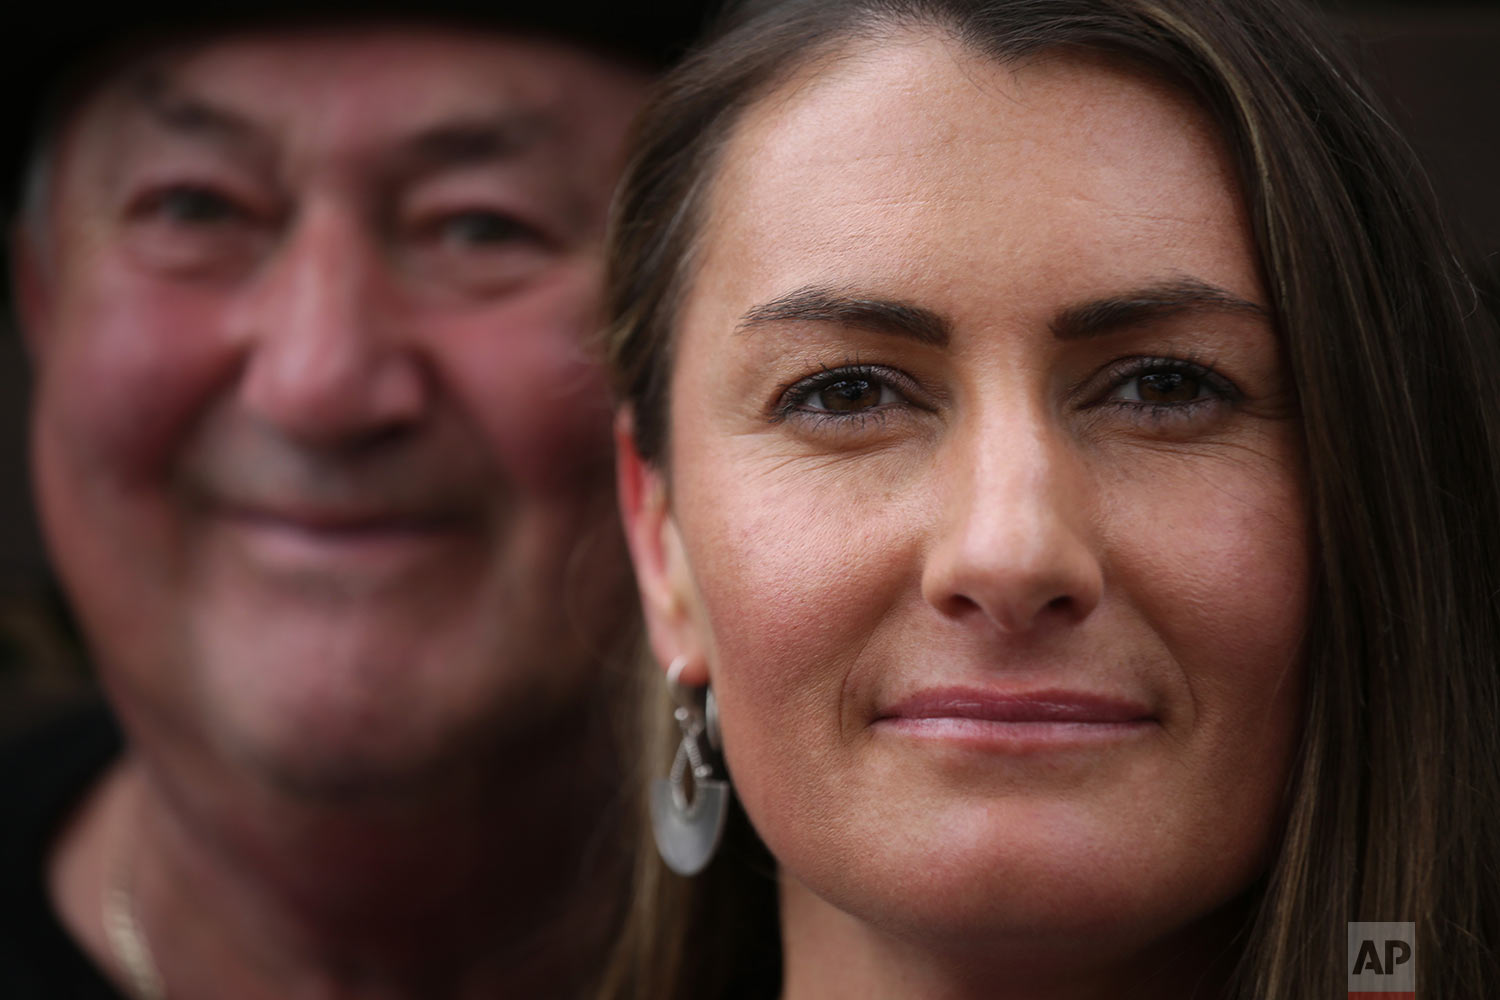 Peter Peacock, 68, left, and Gypsy Diamond, 36, pose for a portrait after an interview with The Associated Press, in Melbourne, Australia. (AP Photo/Wong Maye-E)